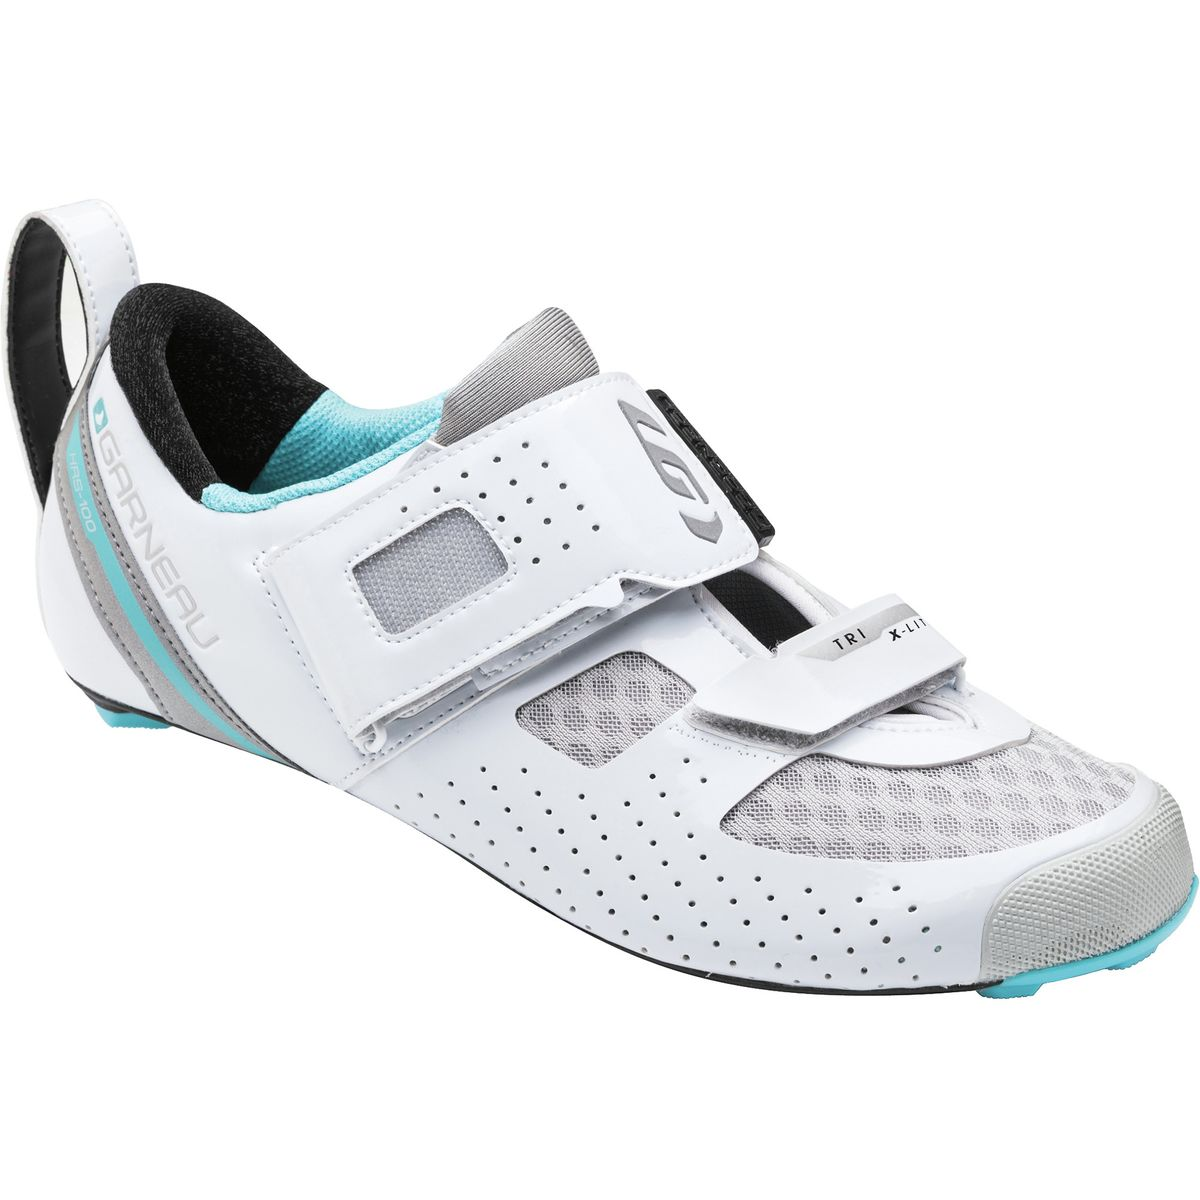 louis garneau tri x lite ii shoe women 39 s competitive cyclist. Black Bedroom Furniture Sets. Home Design Ideas